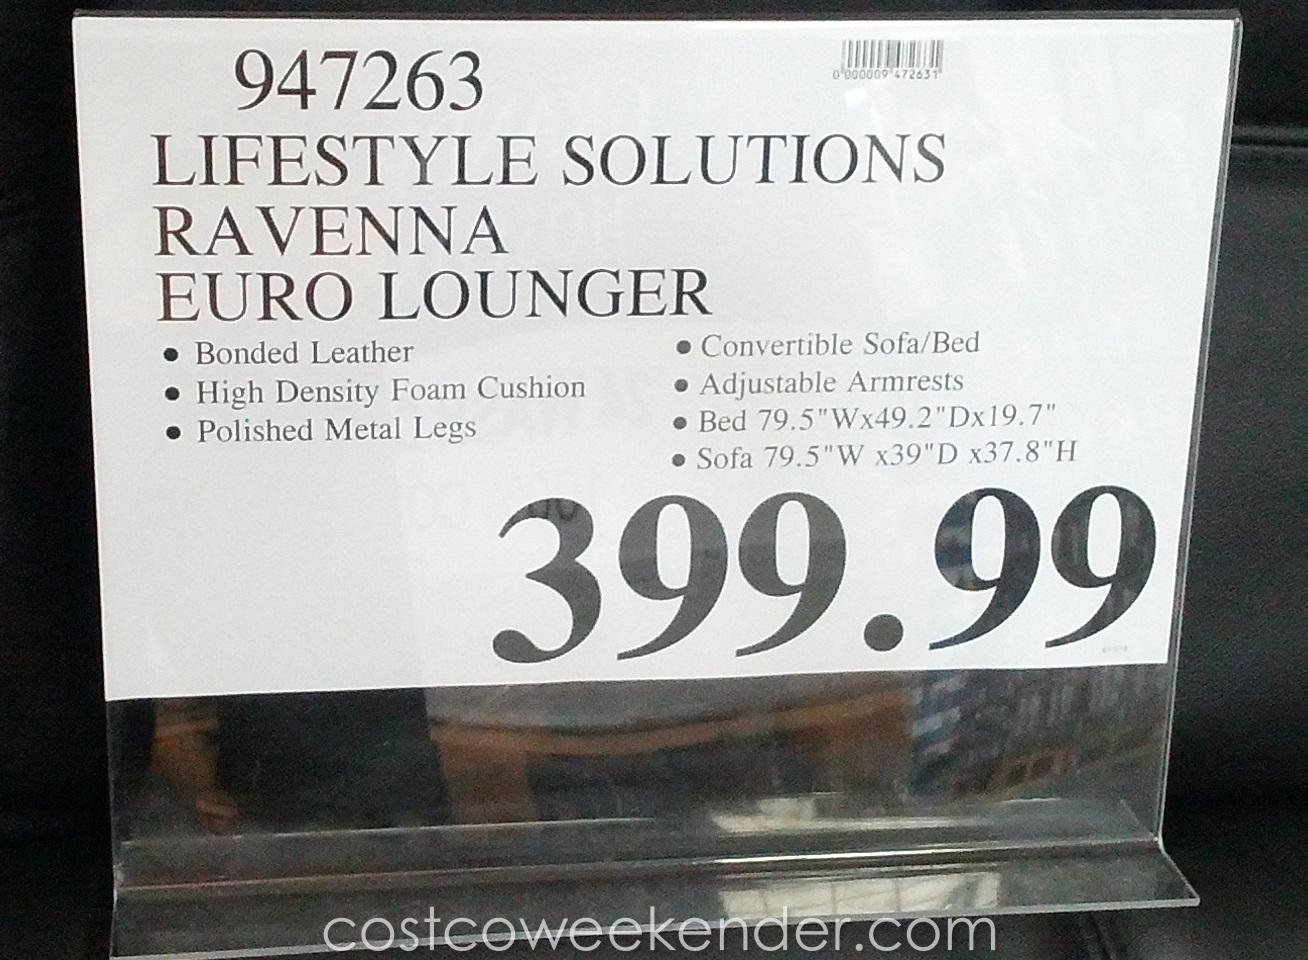 Leather Futon Costco | Roselawnlutheran In Euro Loungers (Image 9 of 20)